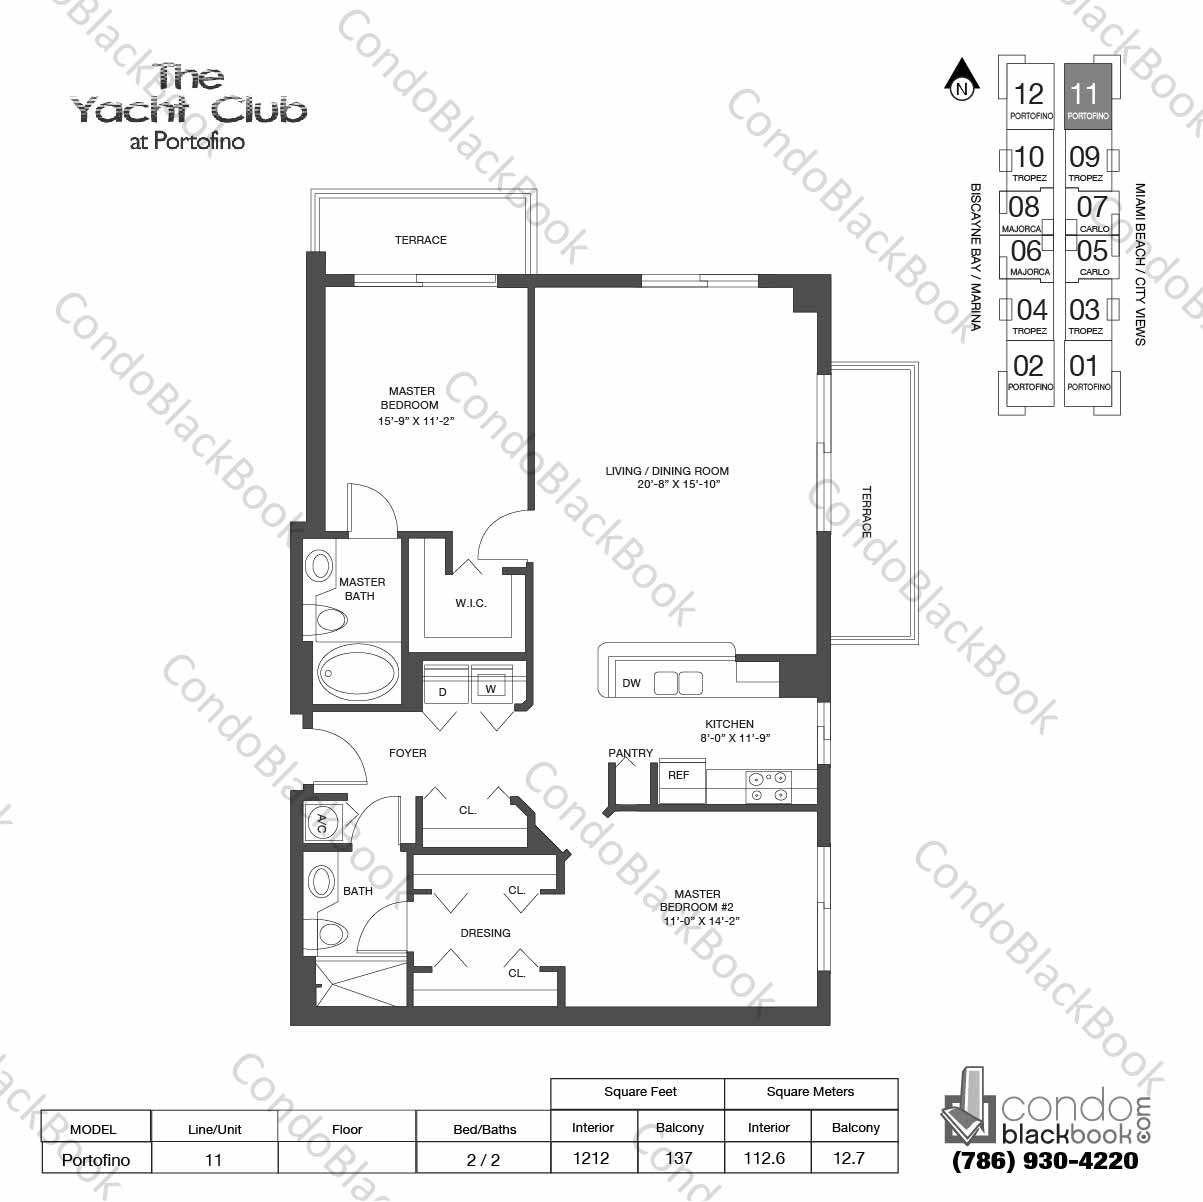 Floor plan for Yacht Club at Portofino South Beach Miami Beach, model Portofino , line 11, 2 / 2 bedrooms, 1212 sq ft